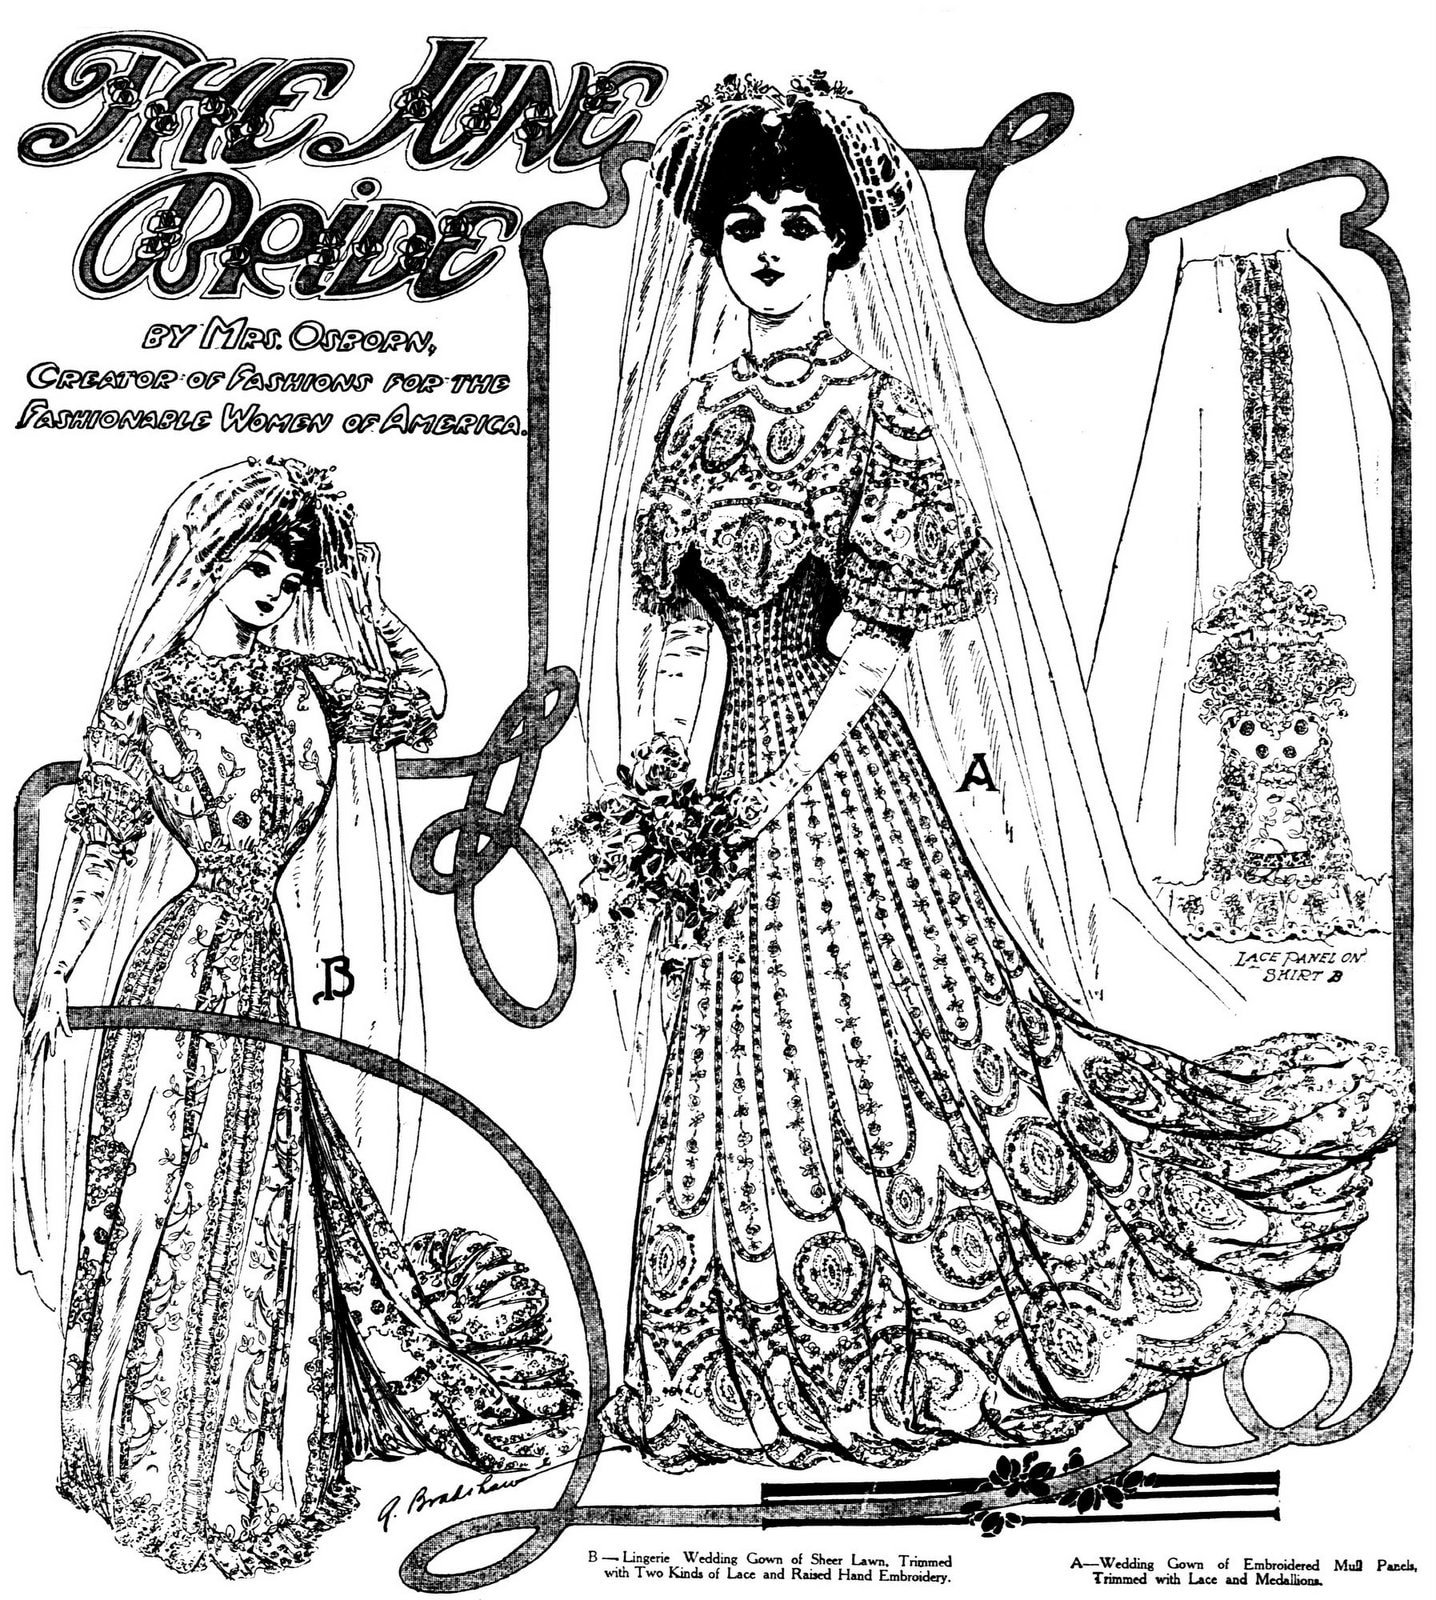 2 embroidered antique wedding gowns from 1906